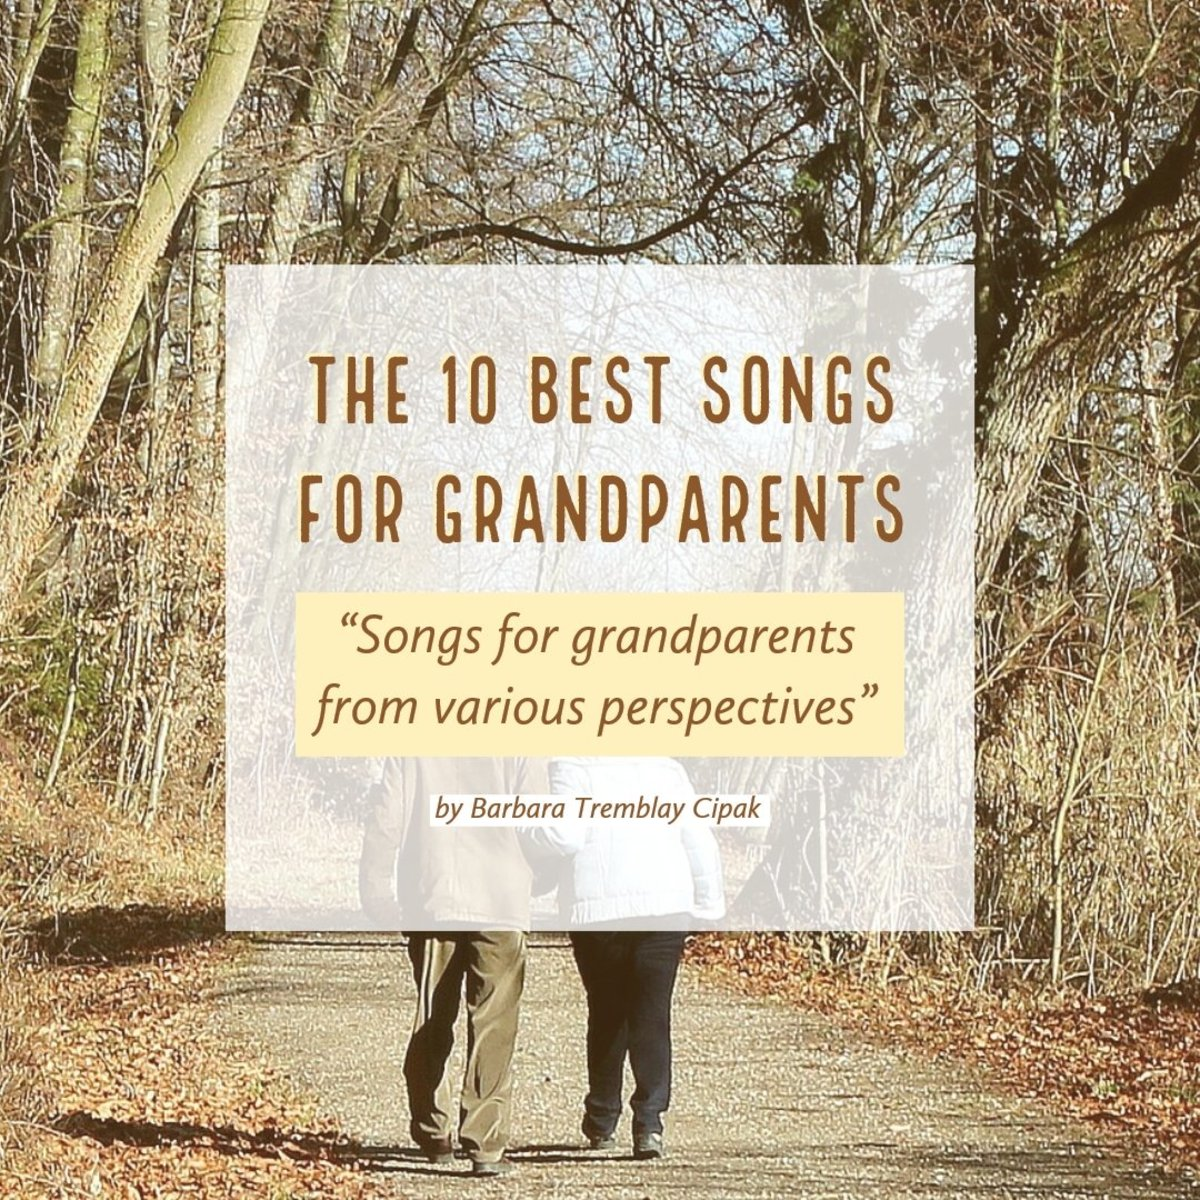 The 10 Best Songs to Honor Grandparents